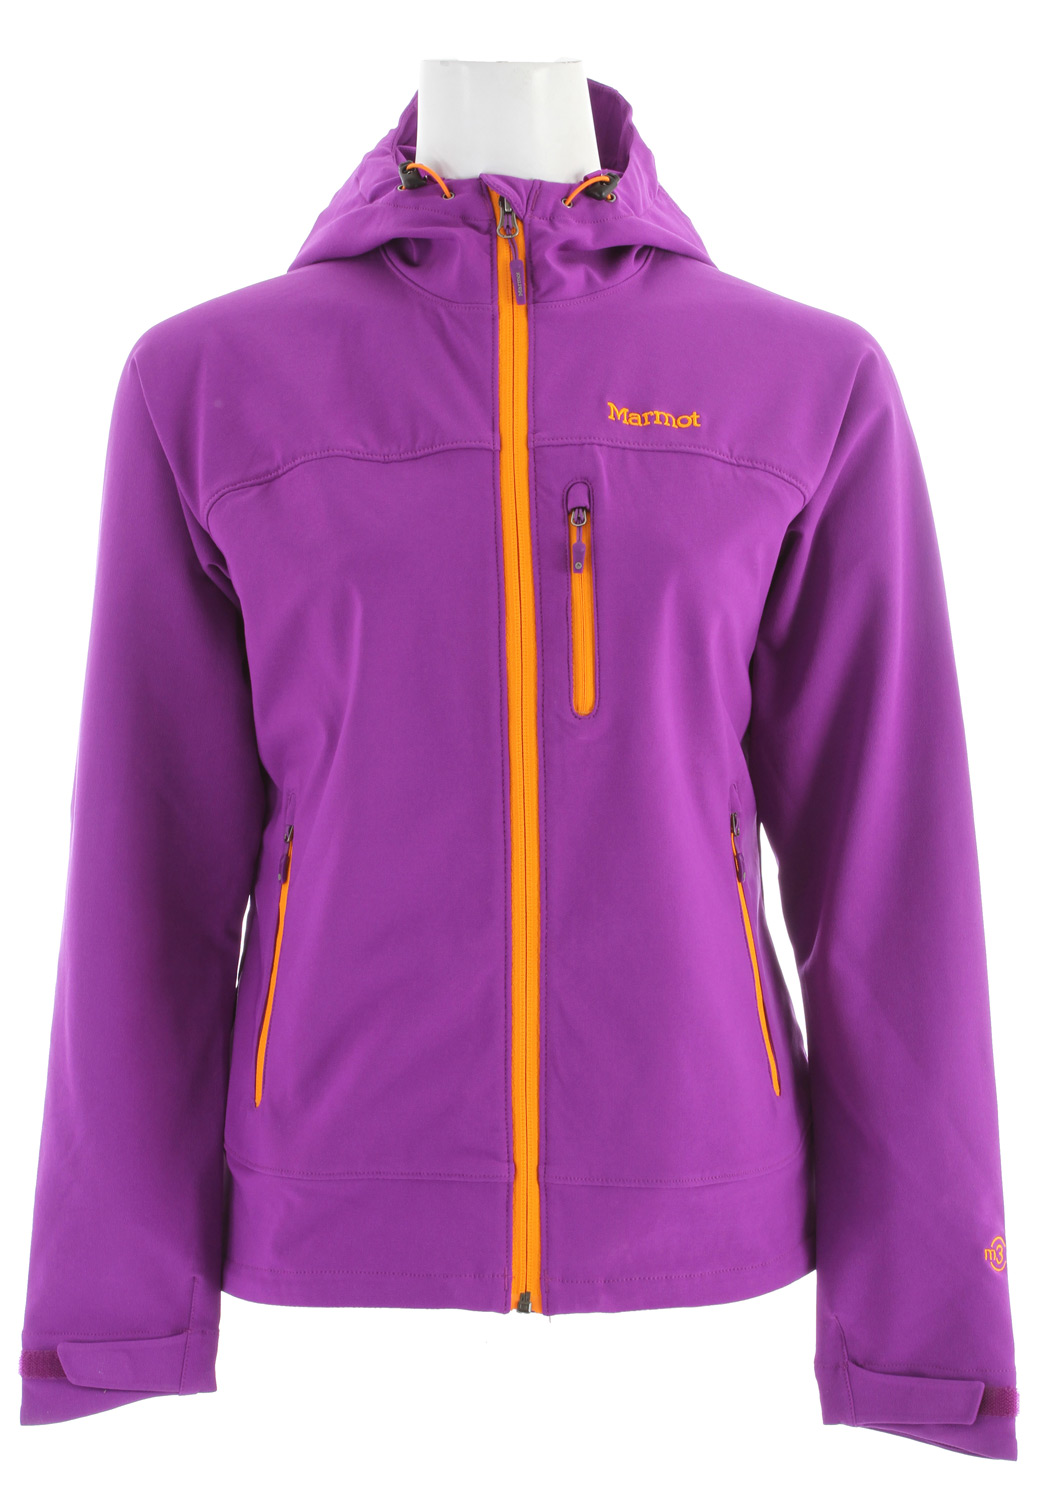 "A perfect layer for spring and fall, when comfort is key, and lightweight softshell performance is just what the doctor ordered. Sized and cut for the female form, with thoughtful features throughout. Handwarmer pockets employ concealed zippers, and reflective logos and cuffs shine brightly on dark nights.Key Features of the Marmot Tempo Hoody Jacket: Marmot M3 Softshell Water Repellent and Breathable - Ideal for Aerobic Activity and Sheds Water Handwarmer Pockets with Concealed Zippers Sleeve Pocket with Concealed Zipper Reflective bound Cuffs Reflective Logos Angel-Wing Movement - Allows Full Range of Motion in Arms so Jacket Doesn't Ride Up 24 1/2"" Center Back Length for Size Medium Center Back Length: 24.5in / 62.2cm Weight: 10.2 oz / 289.2 g Main Material: Softshell Double Weave 90% Polyester 10% Elastane Stretch 7.3 oz/yd - $91.95"